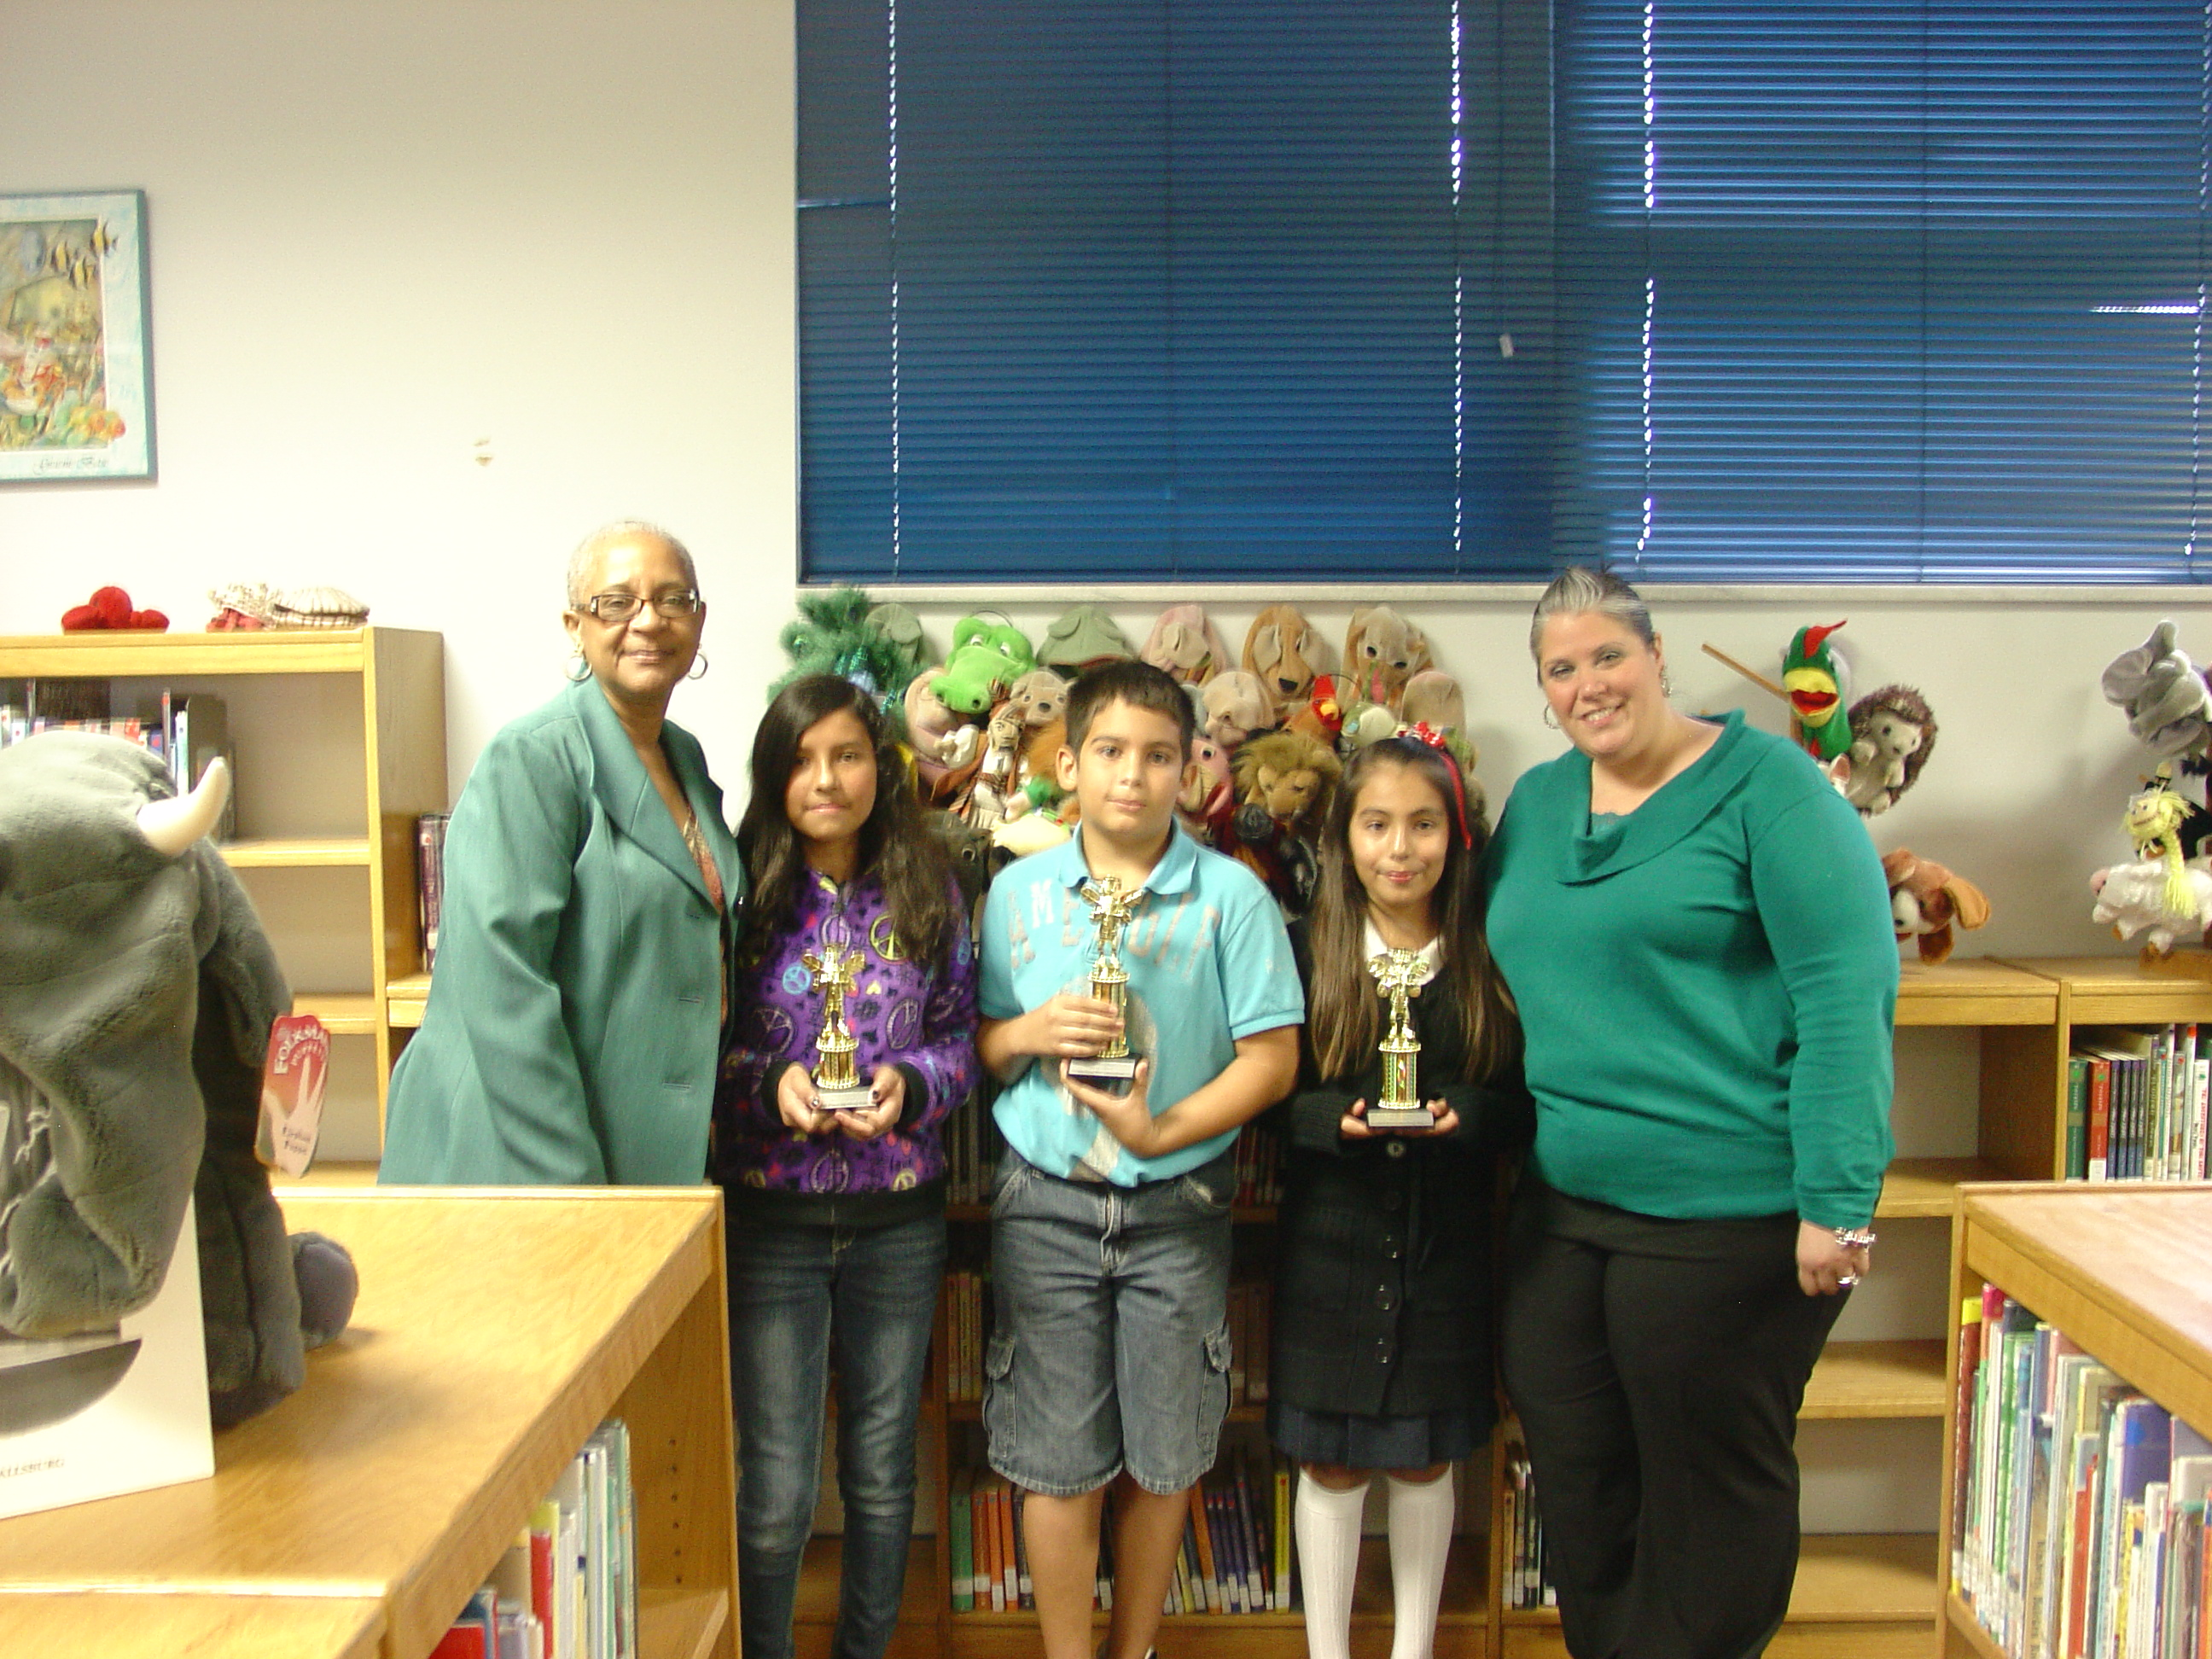 St. Lucie Elementary holds spelling bee